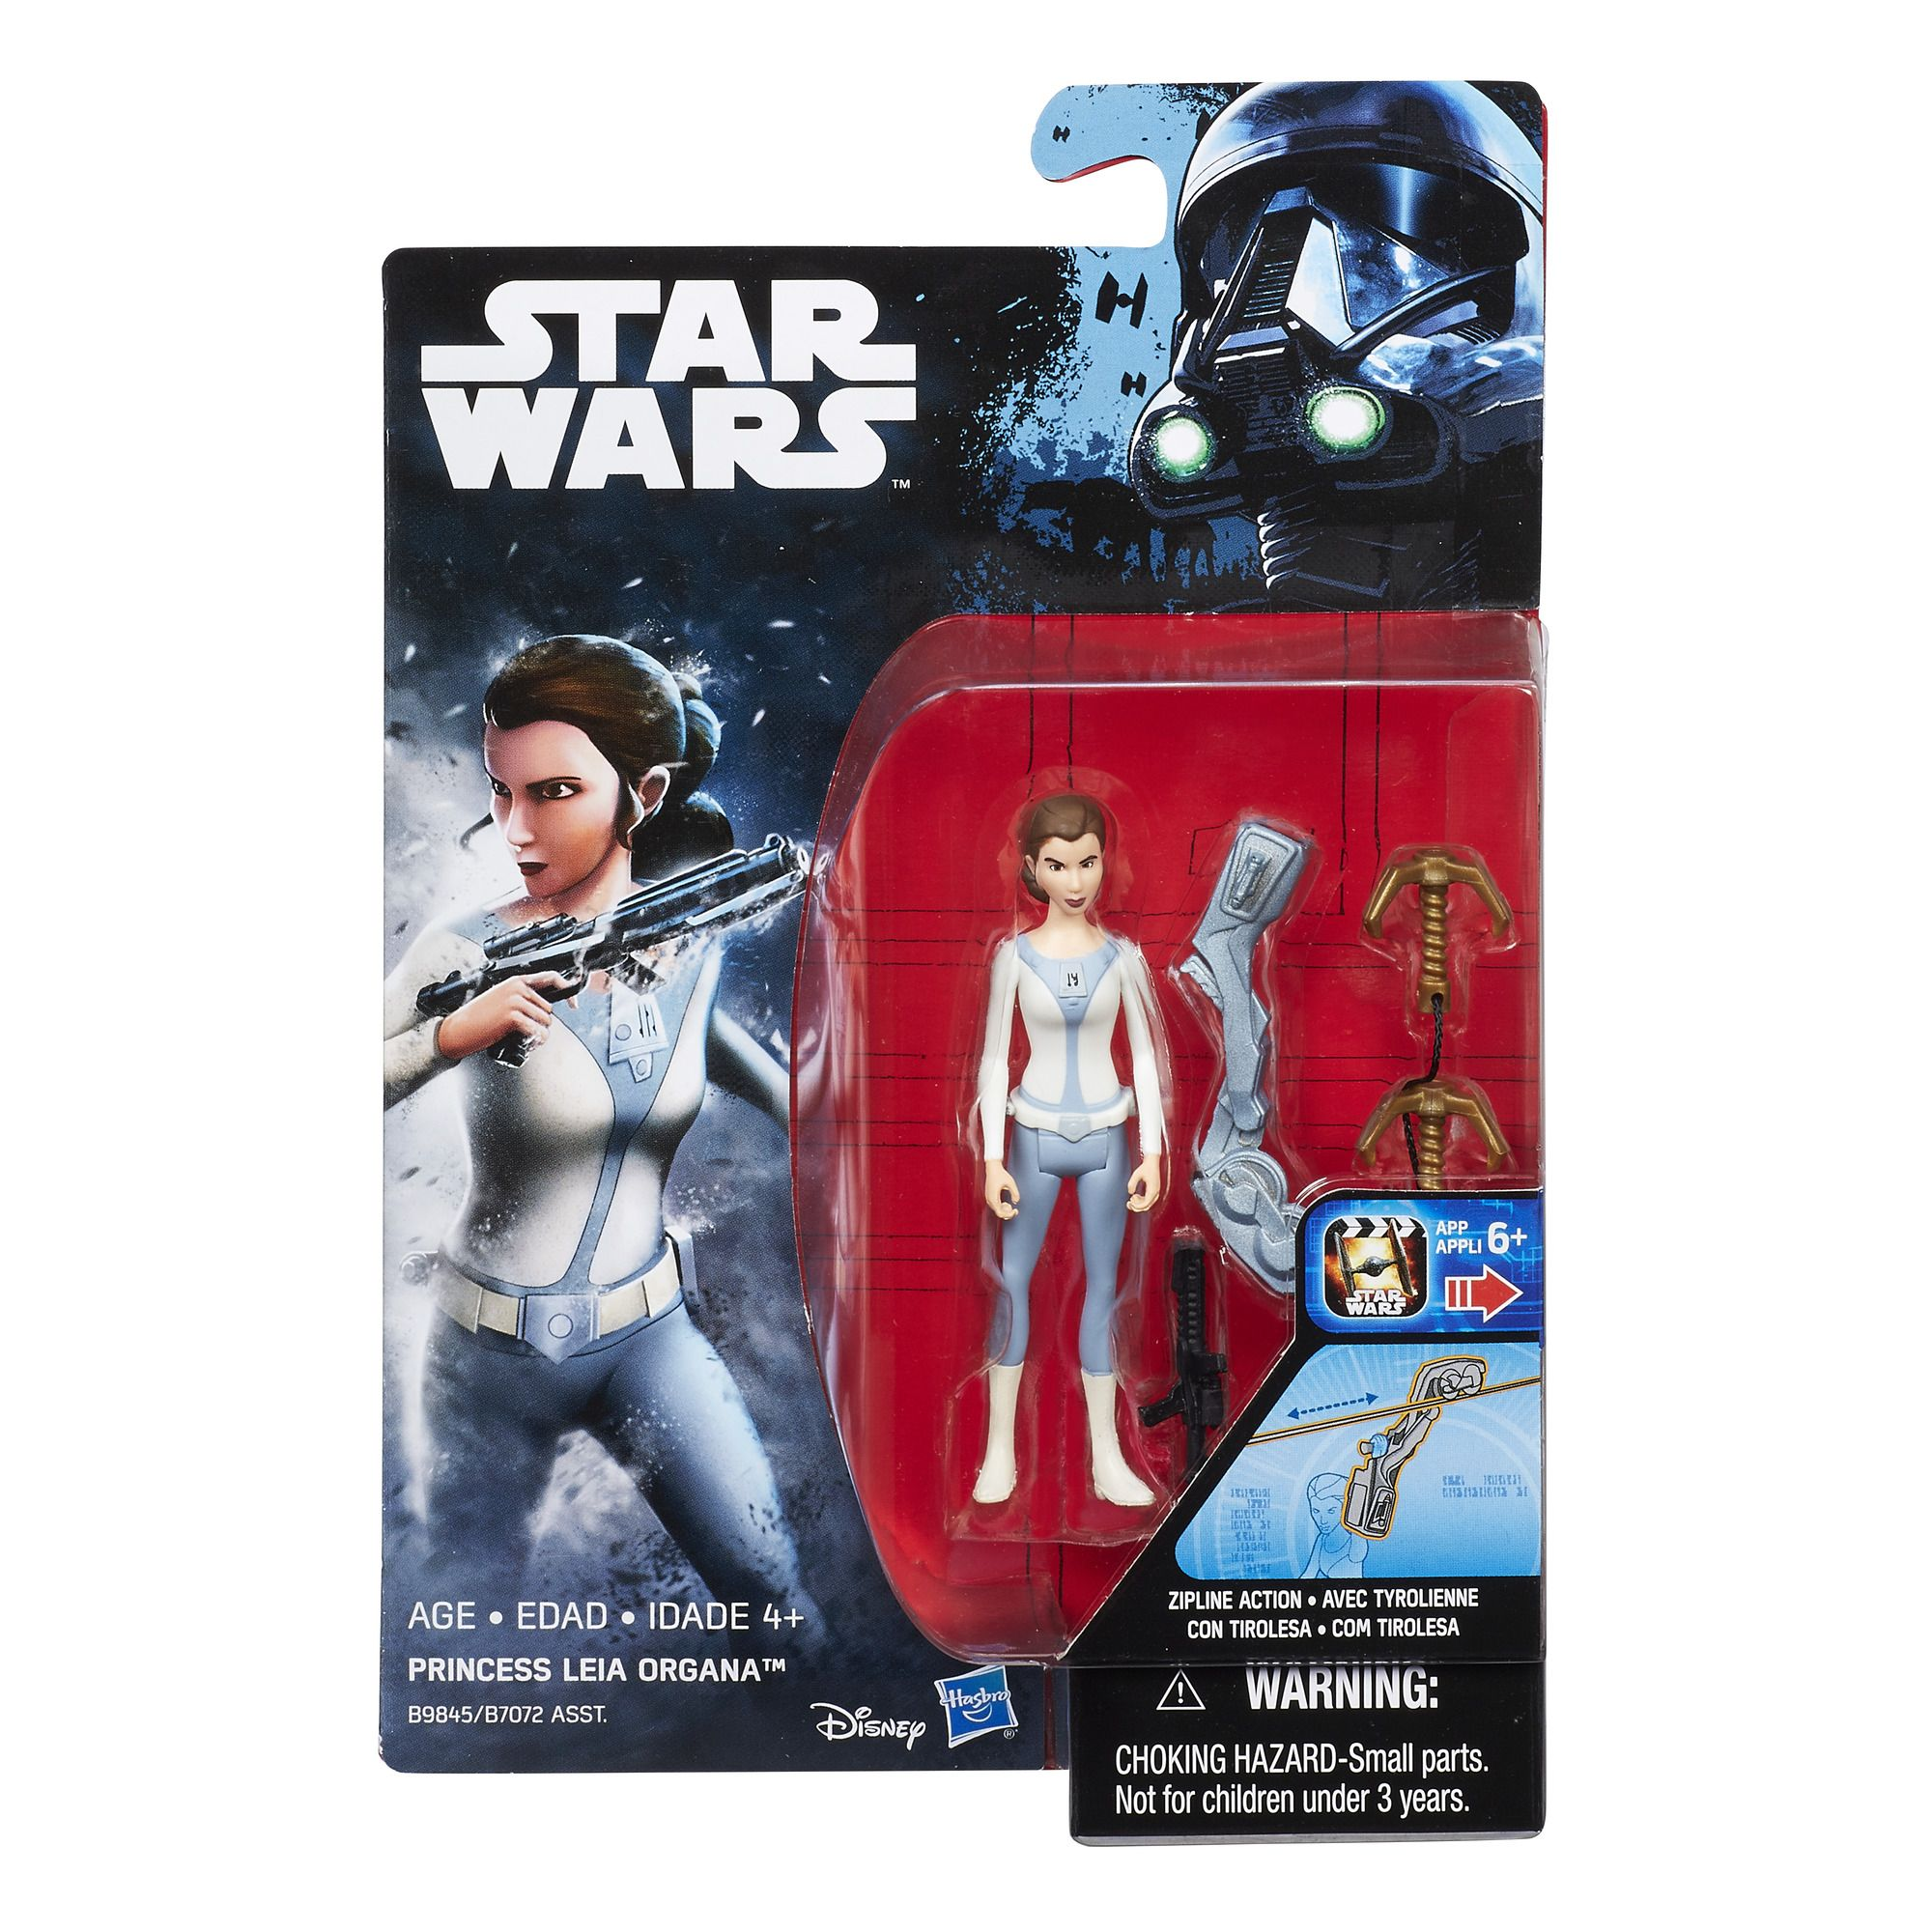 Star Wars Princess Leia Organa